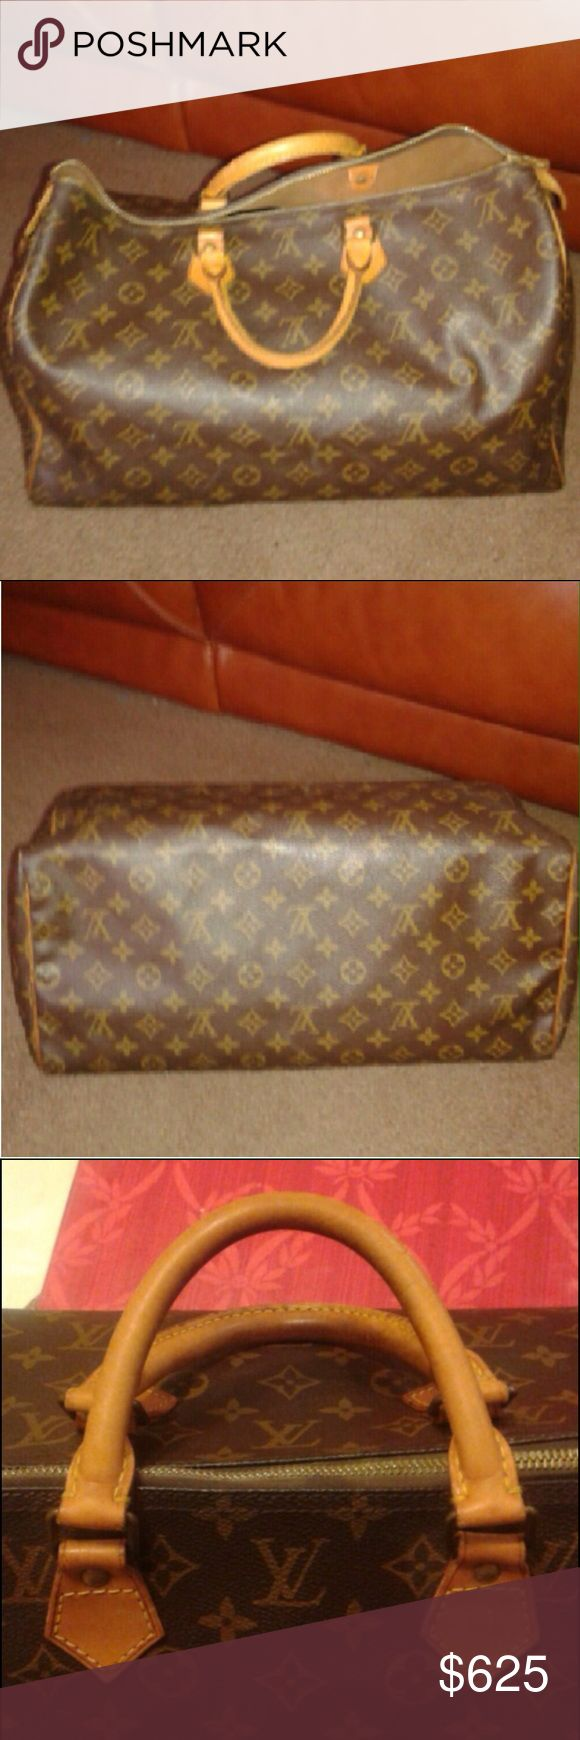 Authentic Louis Vuitton Speedy 40 After being lost in the postal service for 2 weeks. She's finally back. In excellent vintage condition. No rips, tears or smells. Zipper runs great. Louis Vuitton Bags Satchels